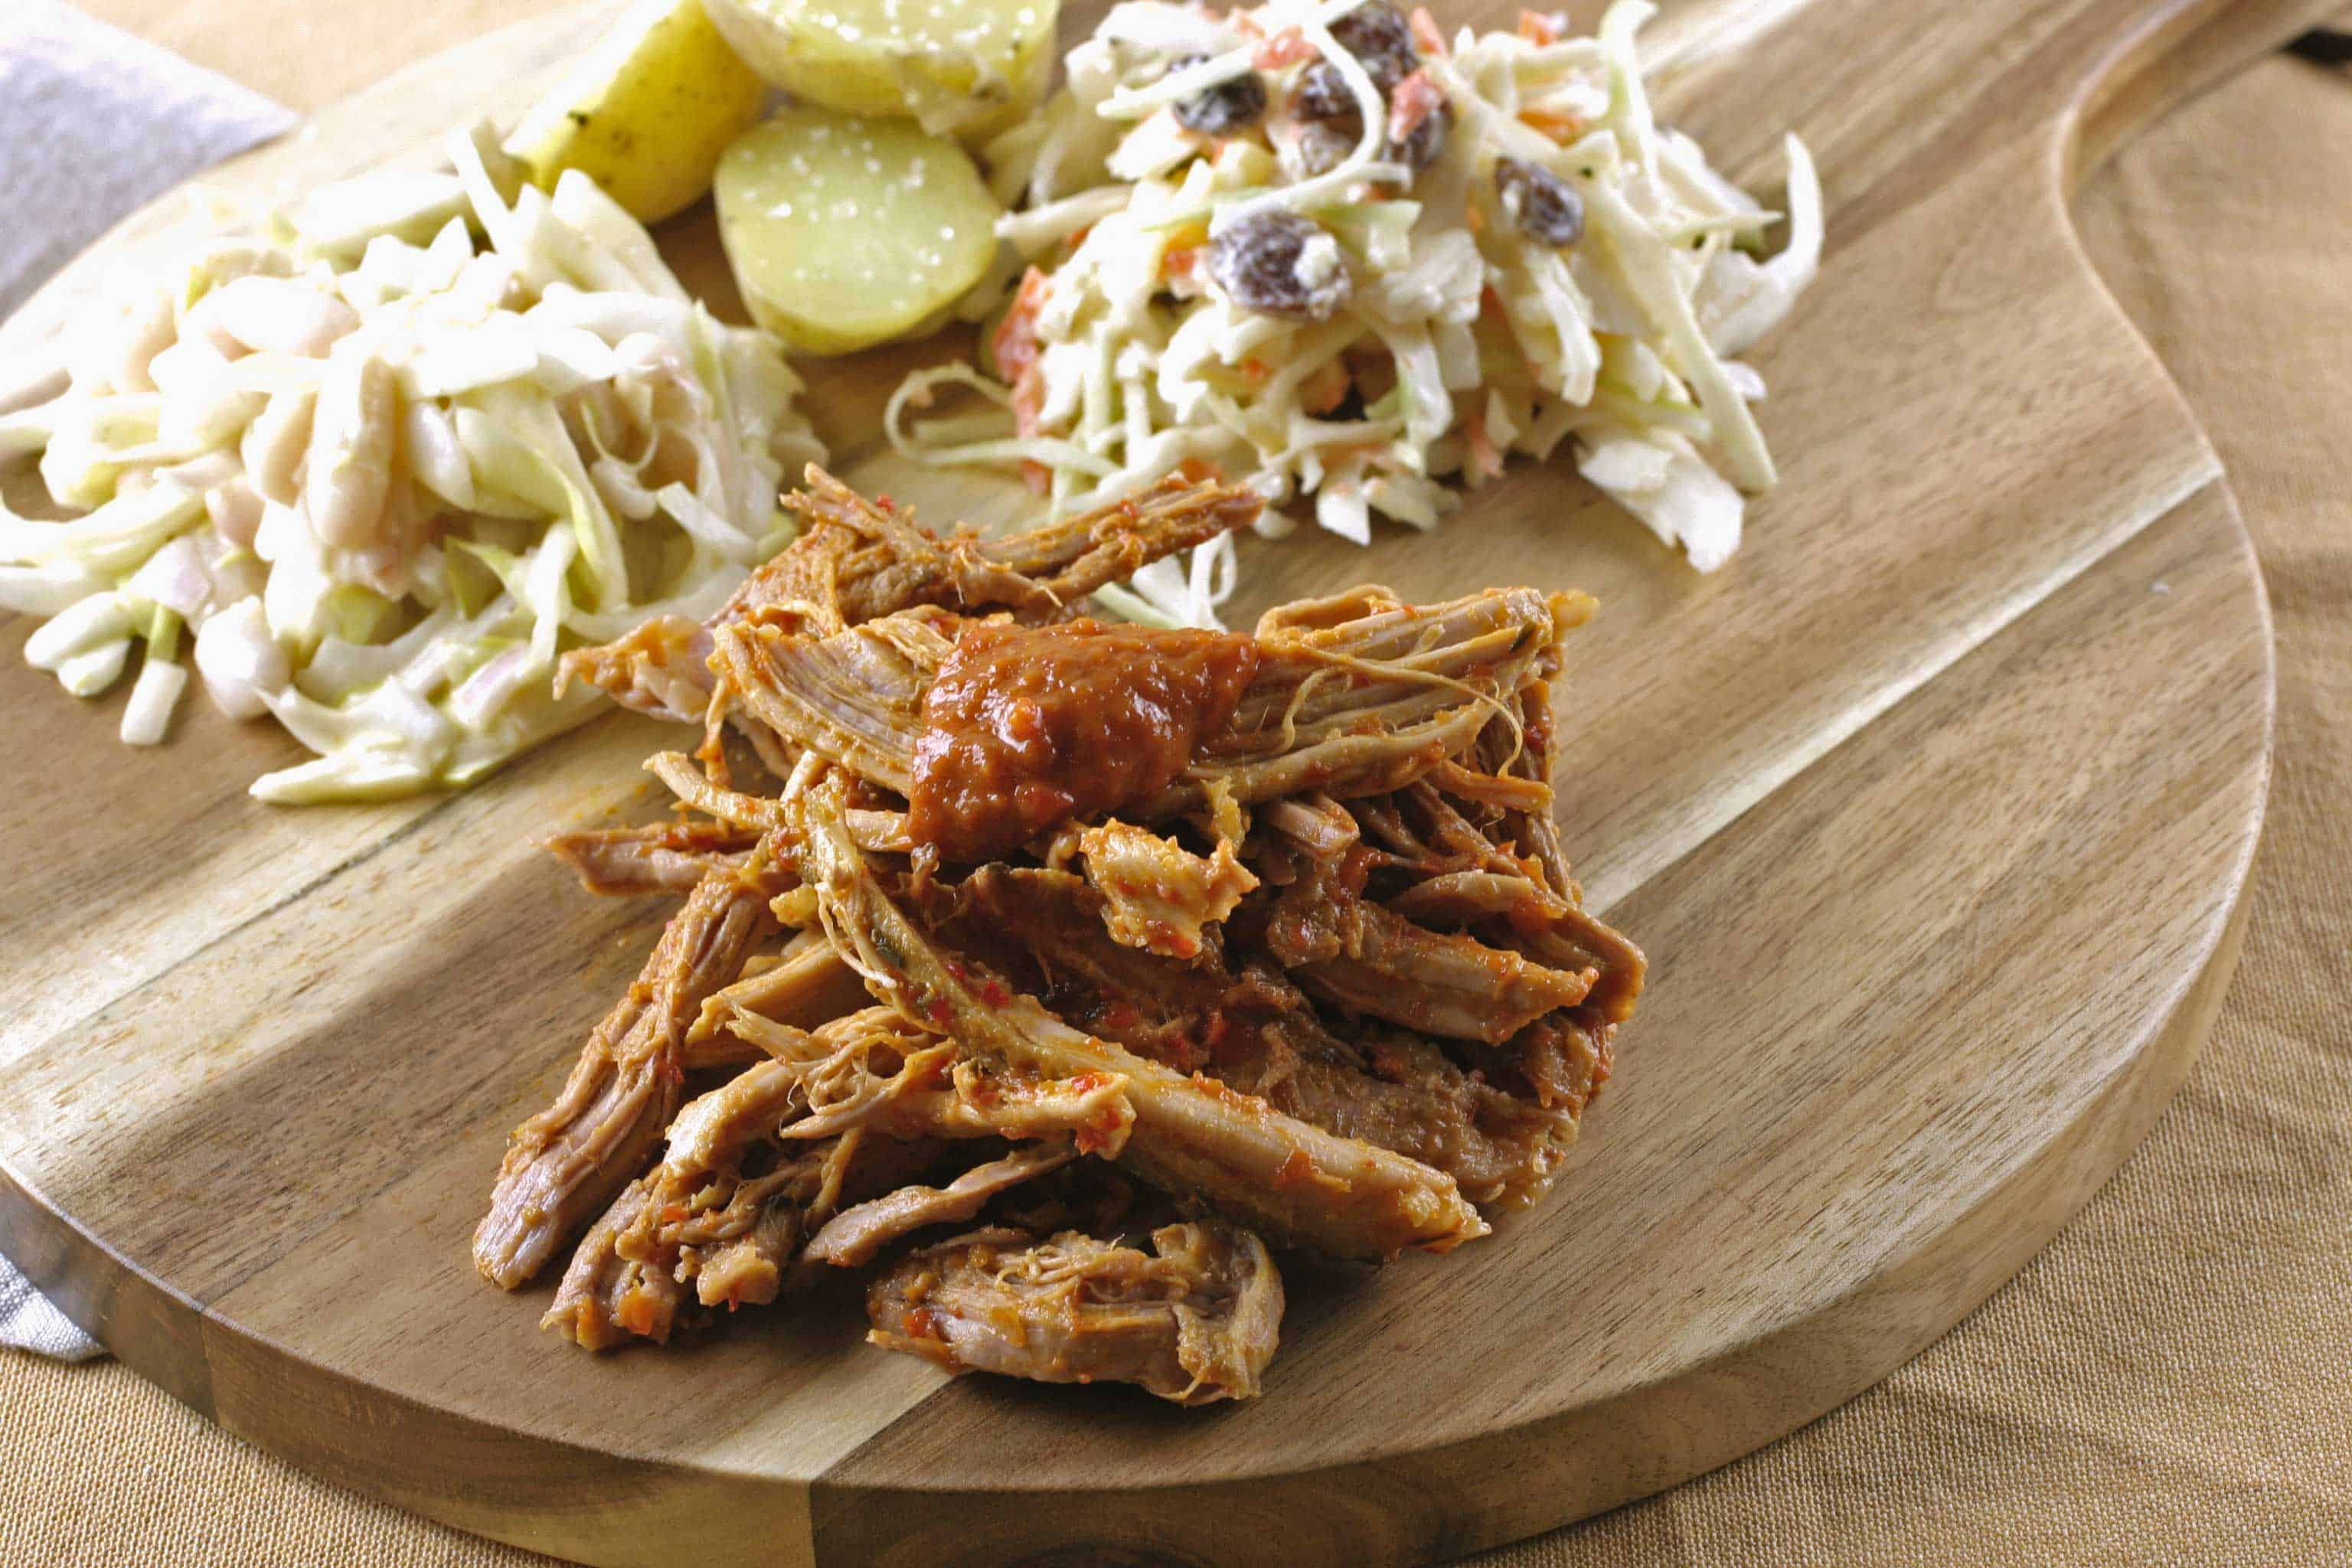 Pulled pork met koolsla